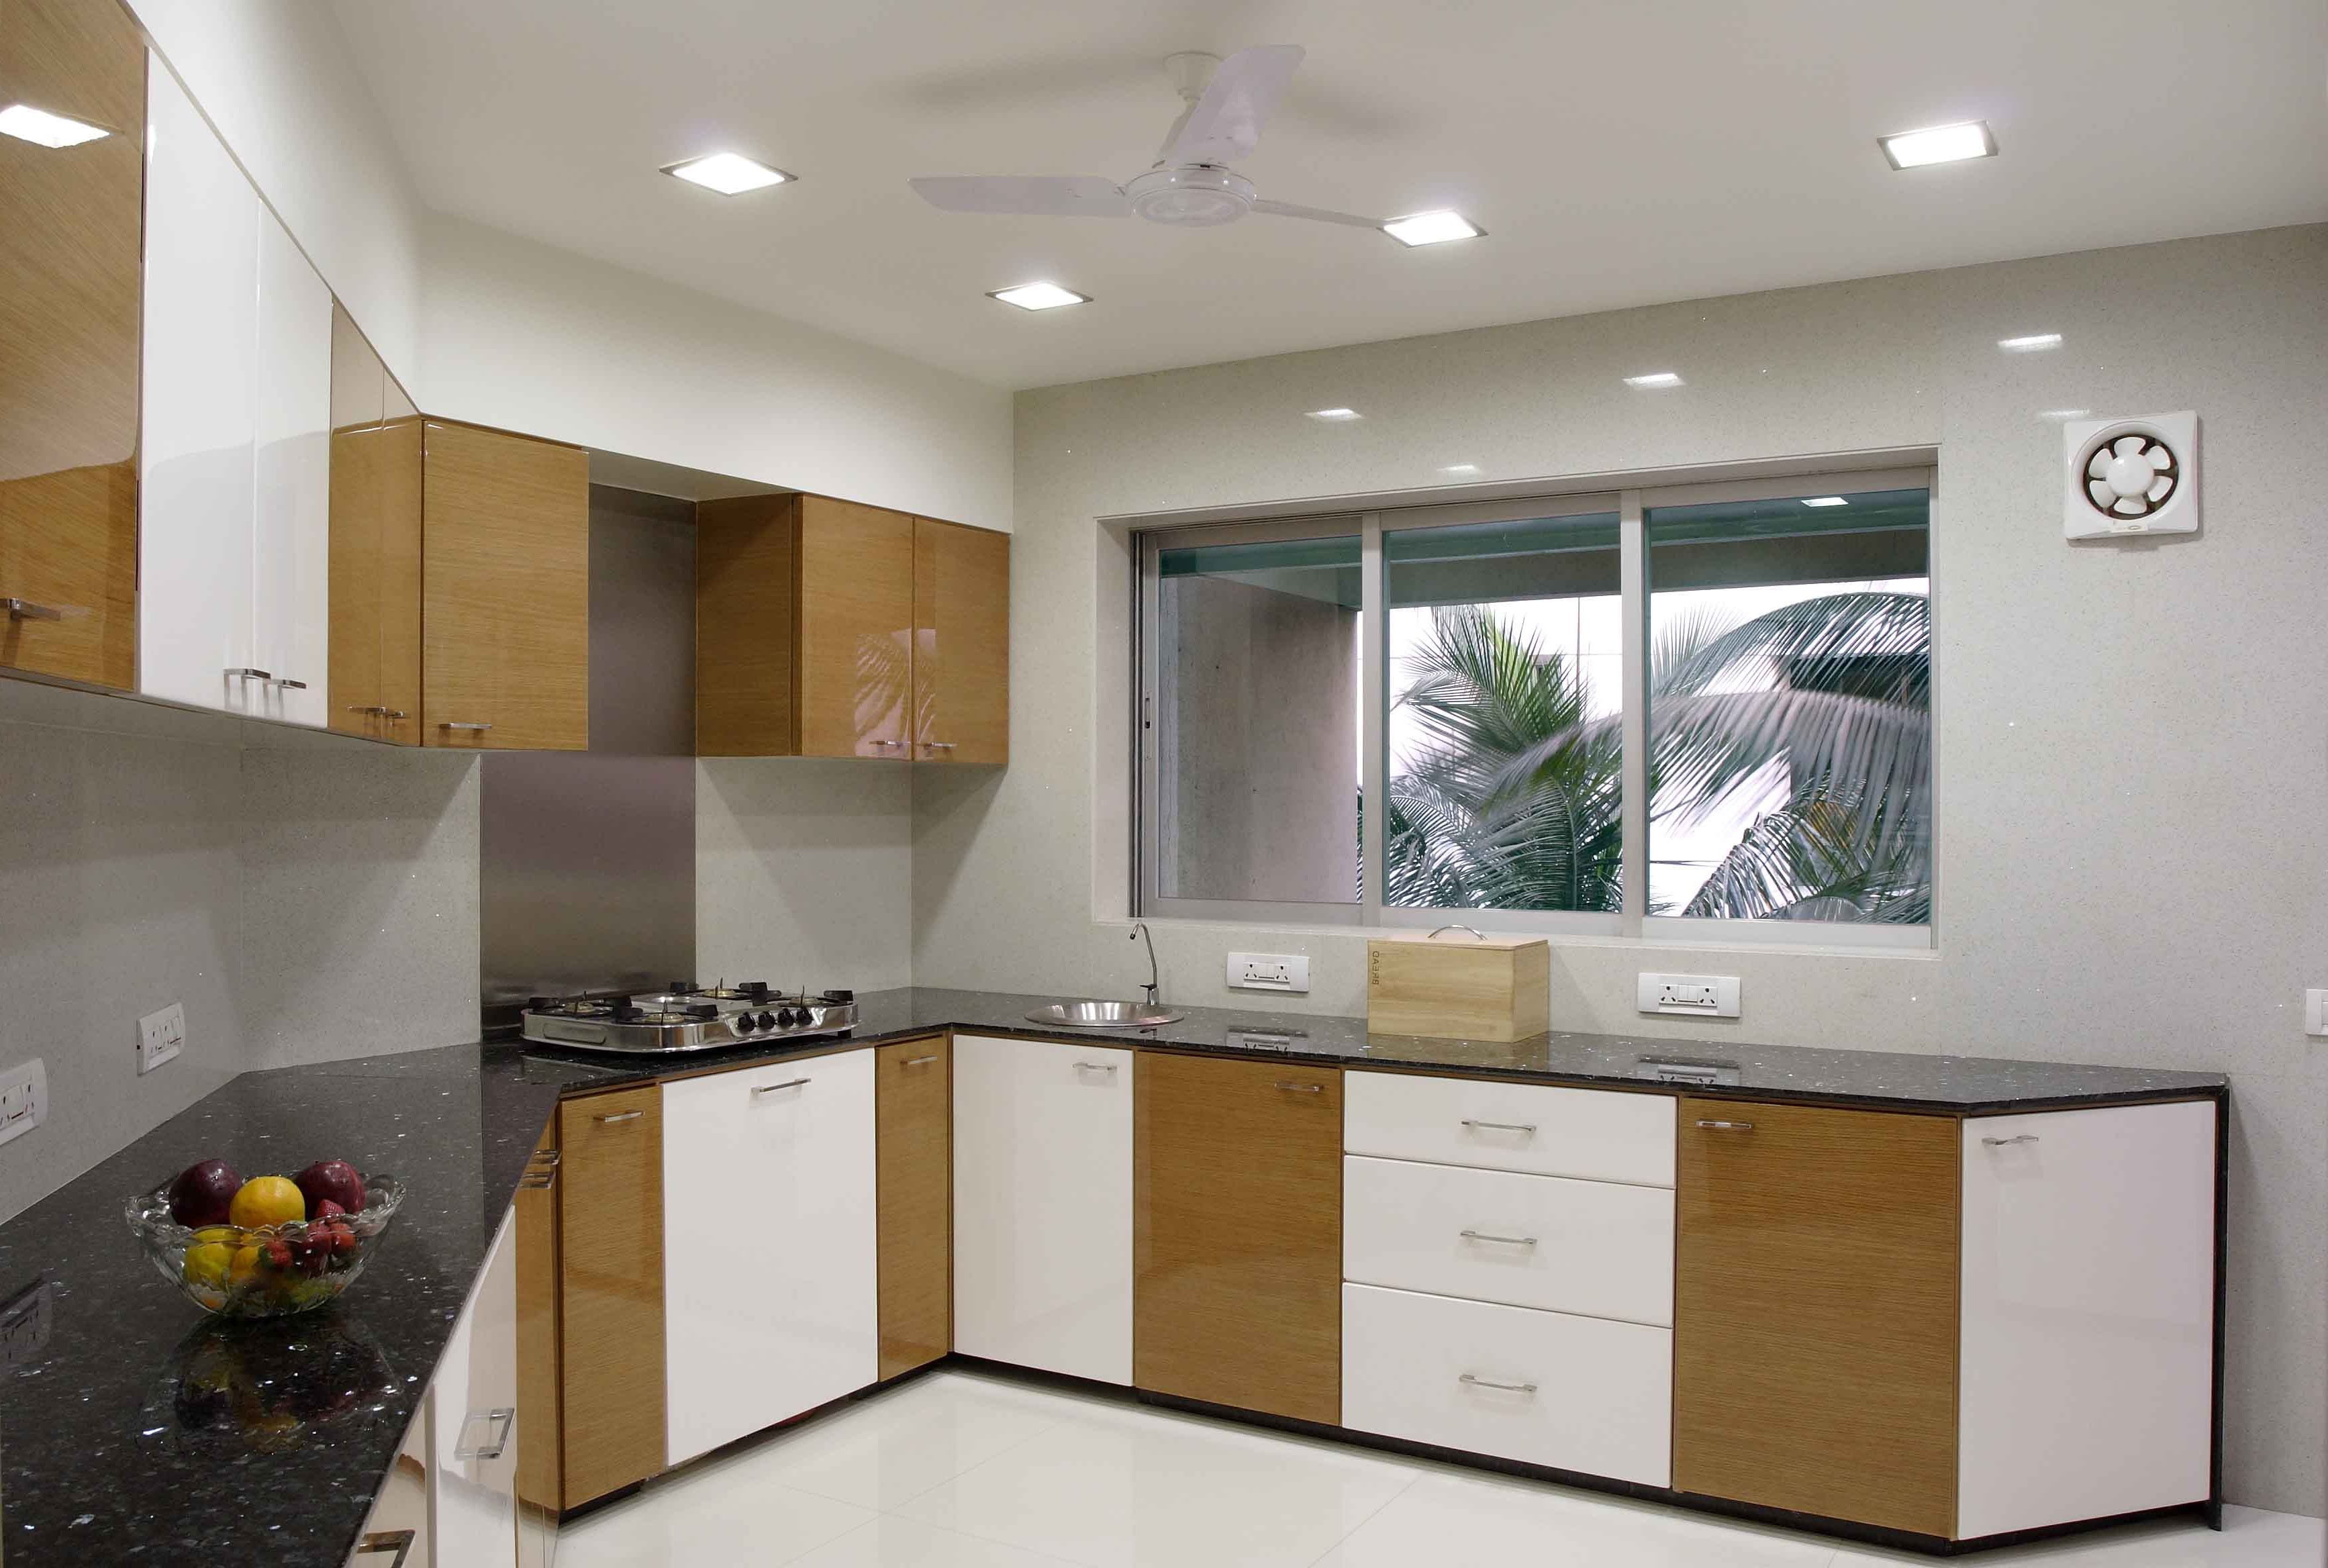 Modular Kitchen Interiors Modular Kitchen Designs In India Small Modular Kitchen Design